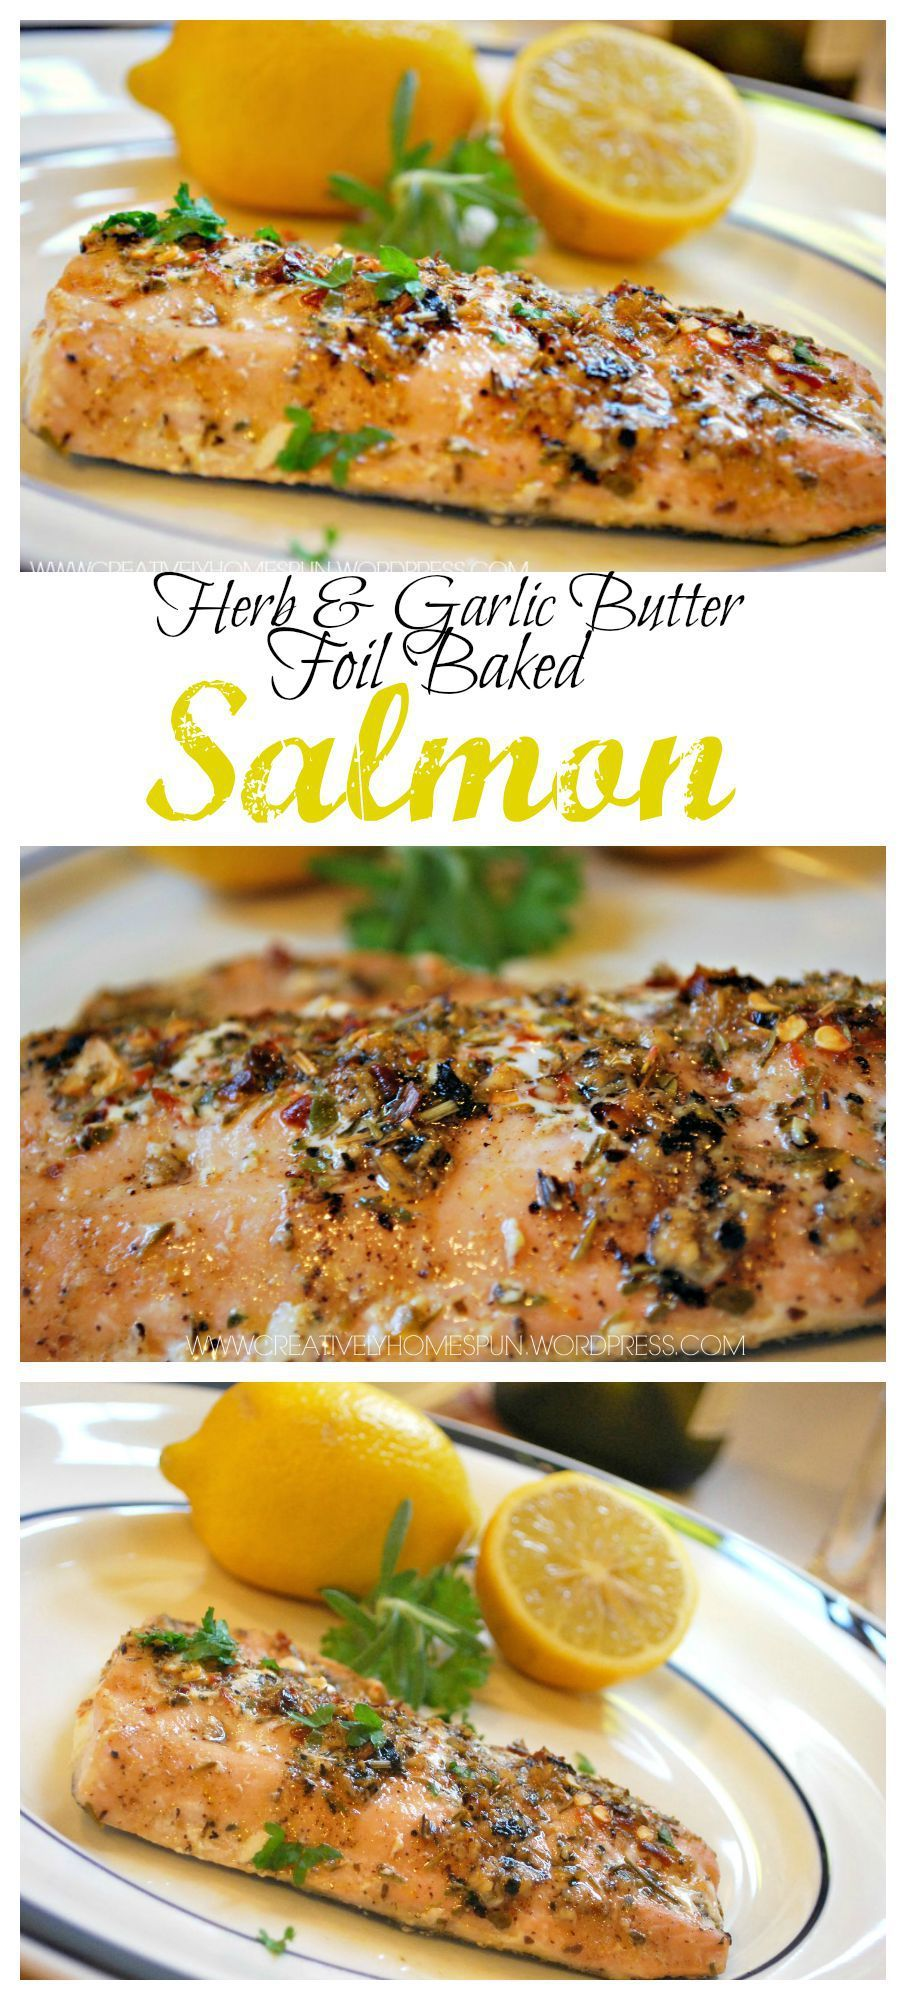 herb garlic butter foil baked salmon dinner delicious try w a white fish recipes in 2019. Black Bedroom Furniture Sets. Home Design Ideas